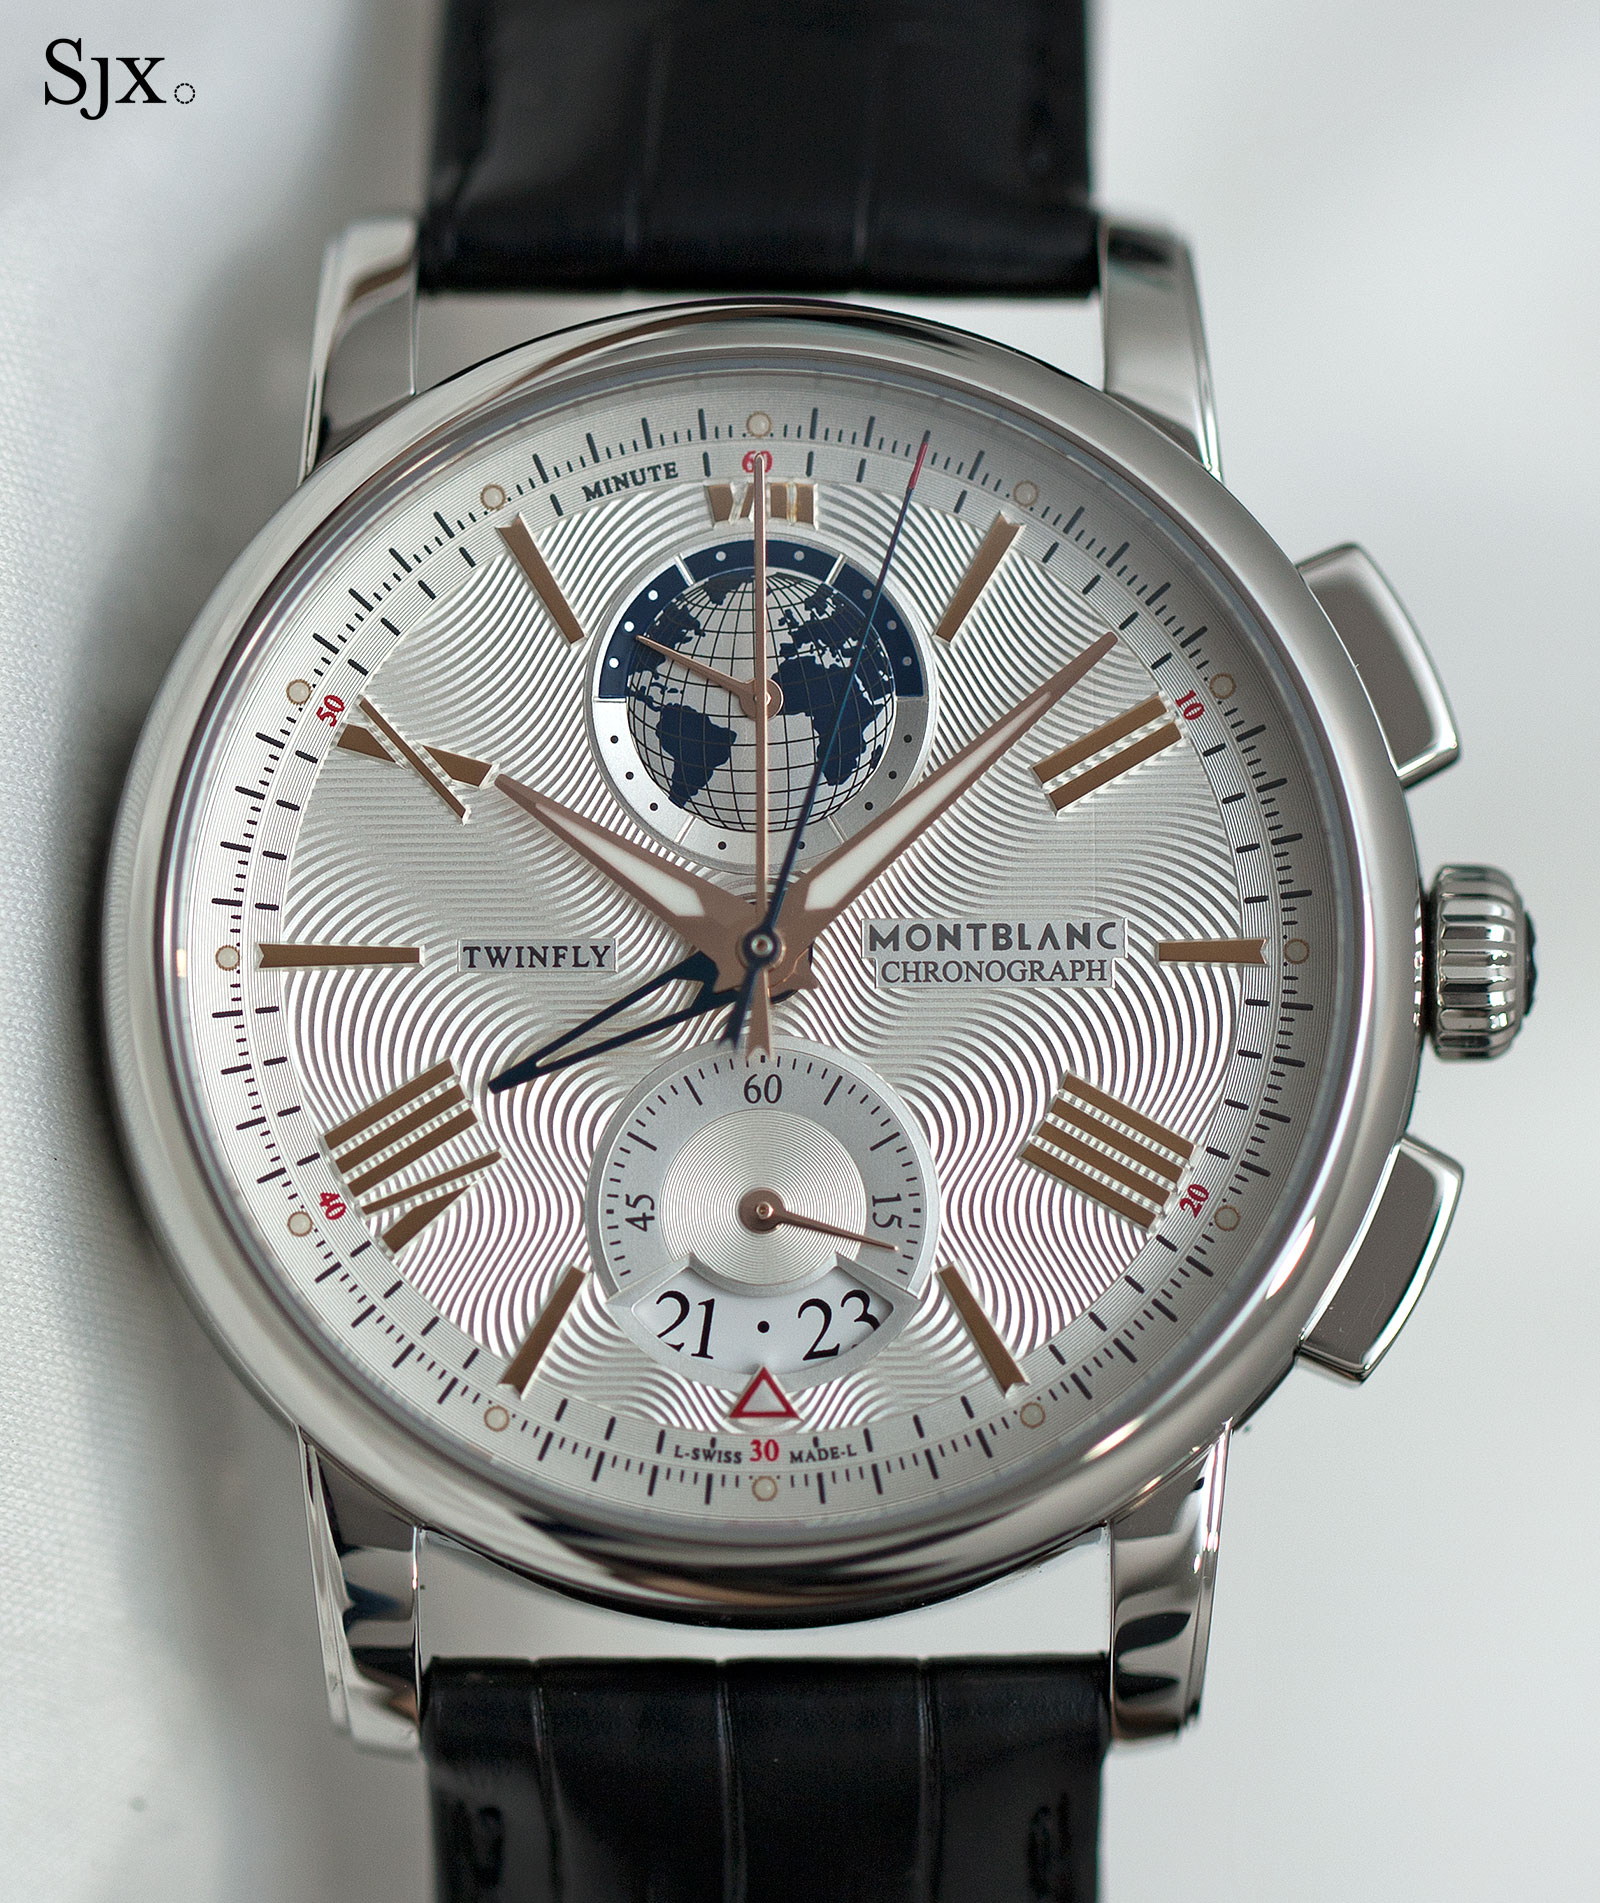 Montblanc 4810 TwinFly Chronograph 110 Years 1